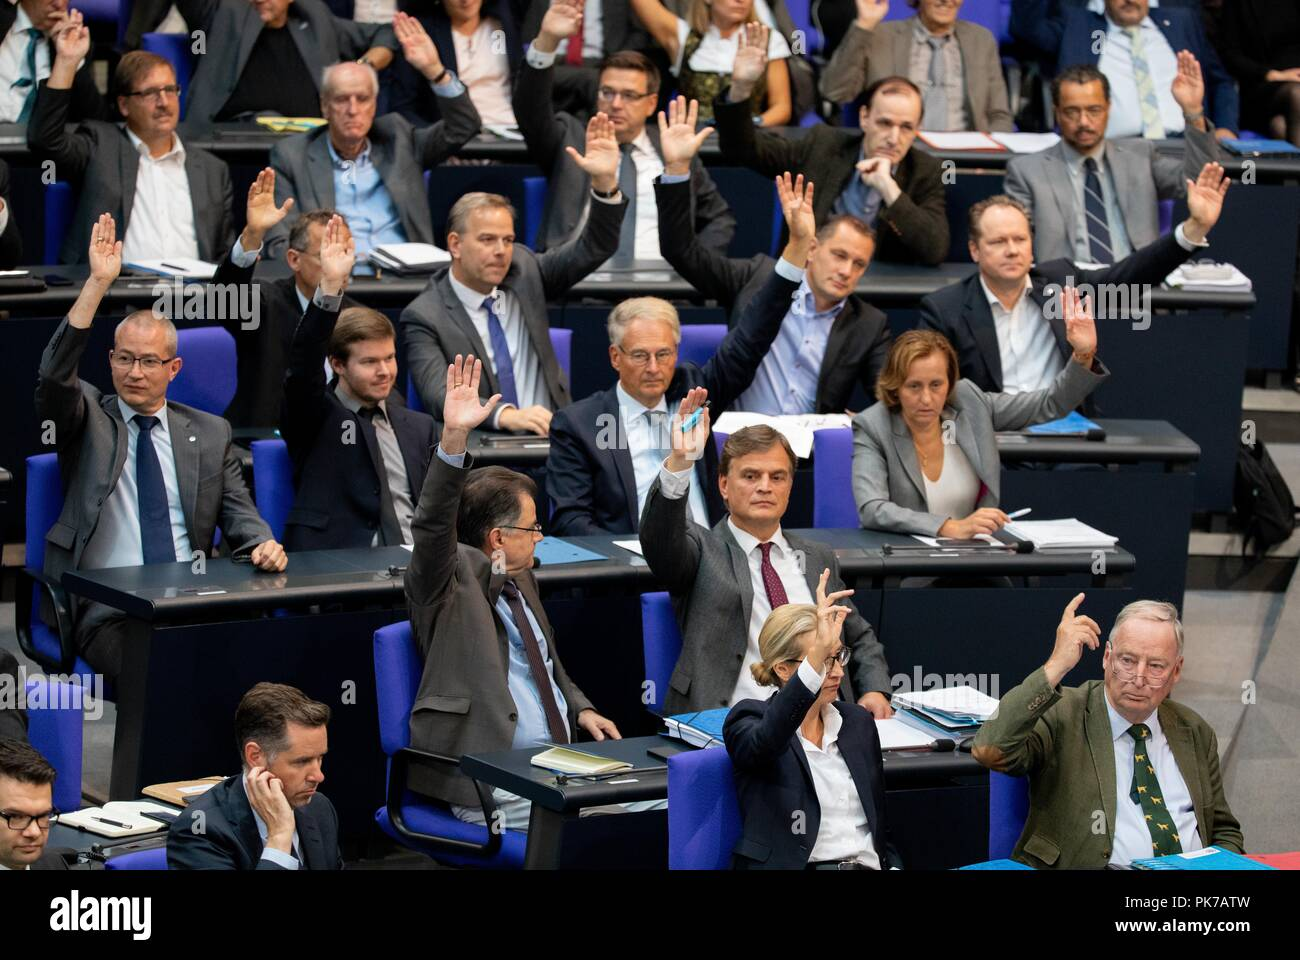 Berlin, Germany. 11 September 2018, Berlin: The faction of the AfD with Alice Weidel (front M), faction leader of the AfD, and Alexander Gauland (r), faction leader of the AfD, raise their hands at the plenary session in the German Bundestag for a vote on the agenda. The main topic of the 47th session of the 19th legislative period is the Federal Government's draft budget 2019 and the federal budget 2018 to 2022. Photo: Bernd von Jutrczenka/dpa Credit: dpa picture alliance/Alamy Live News - Stock Image